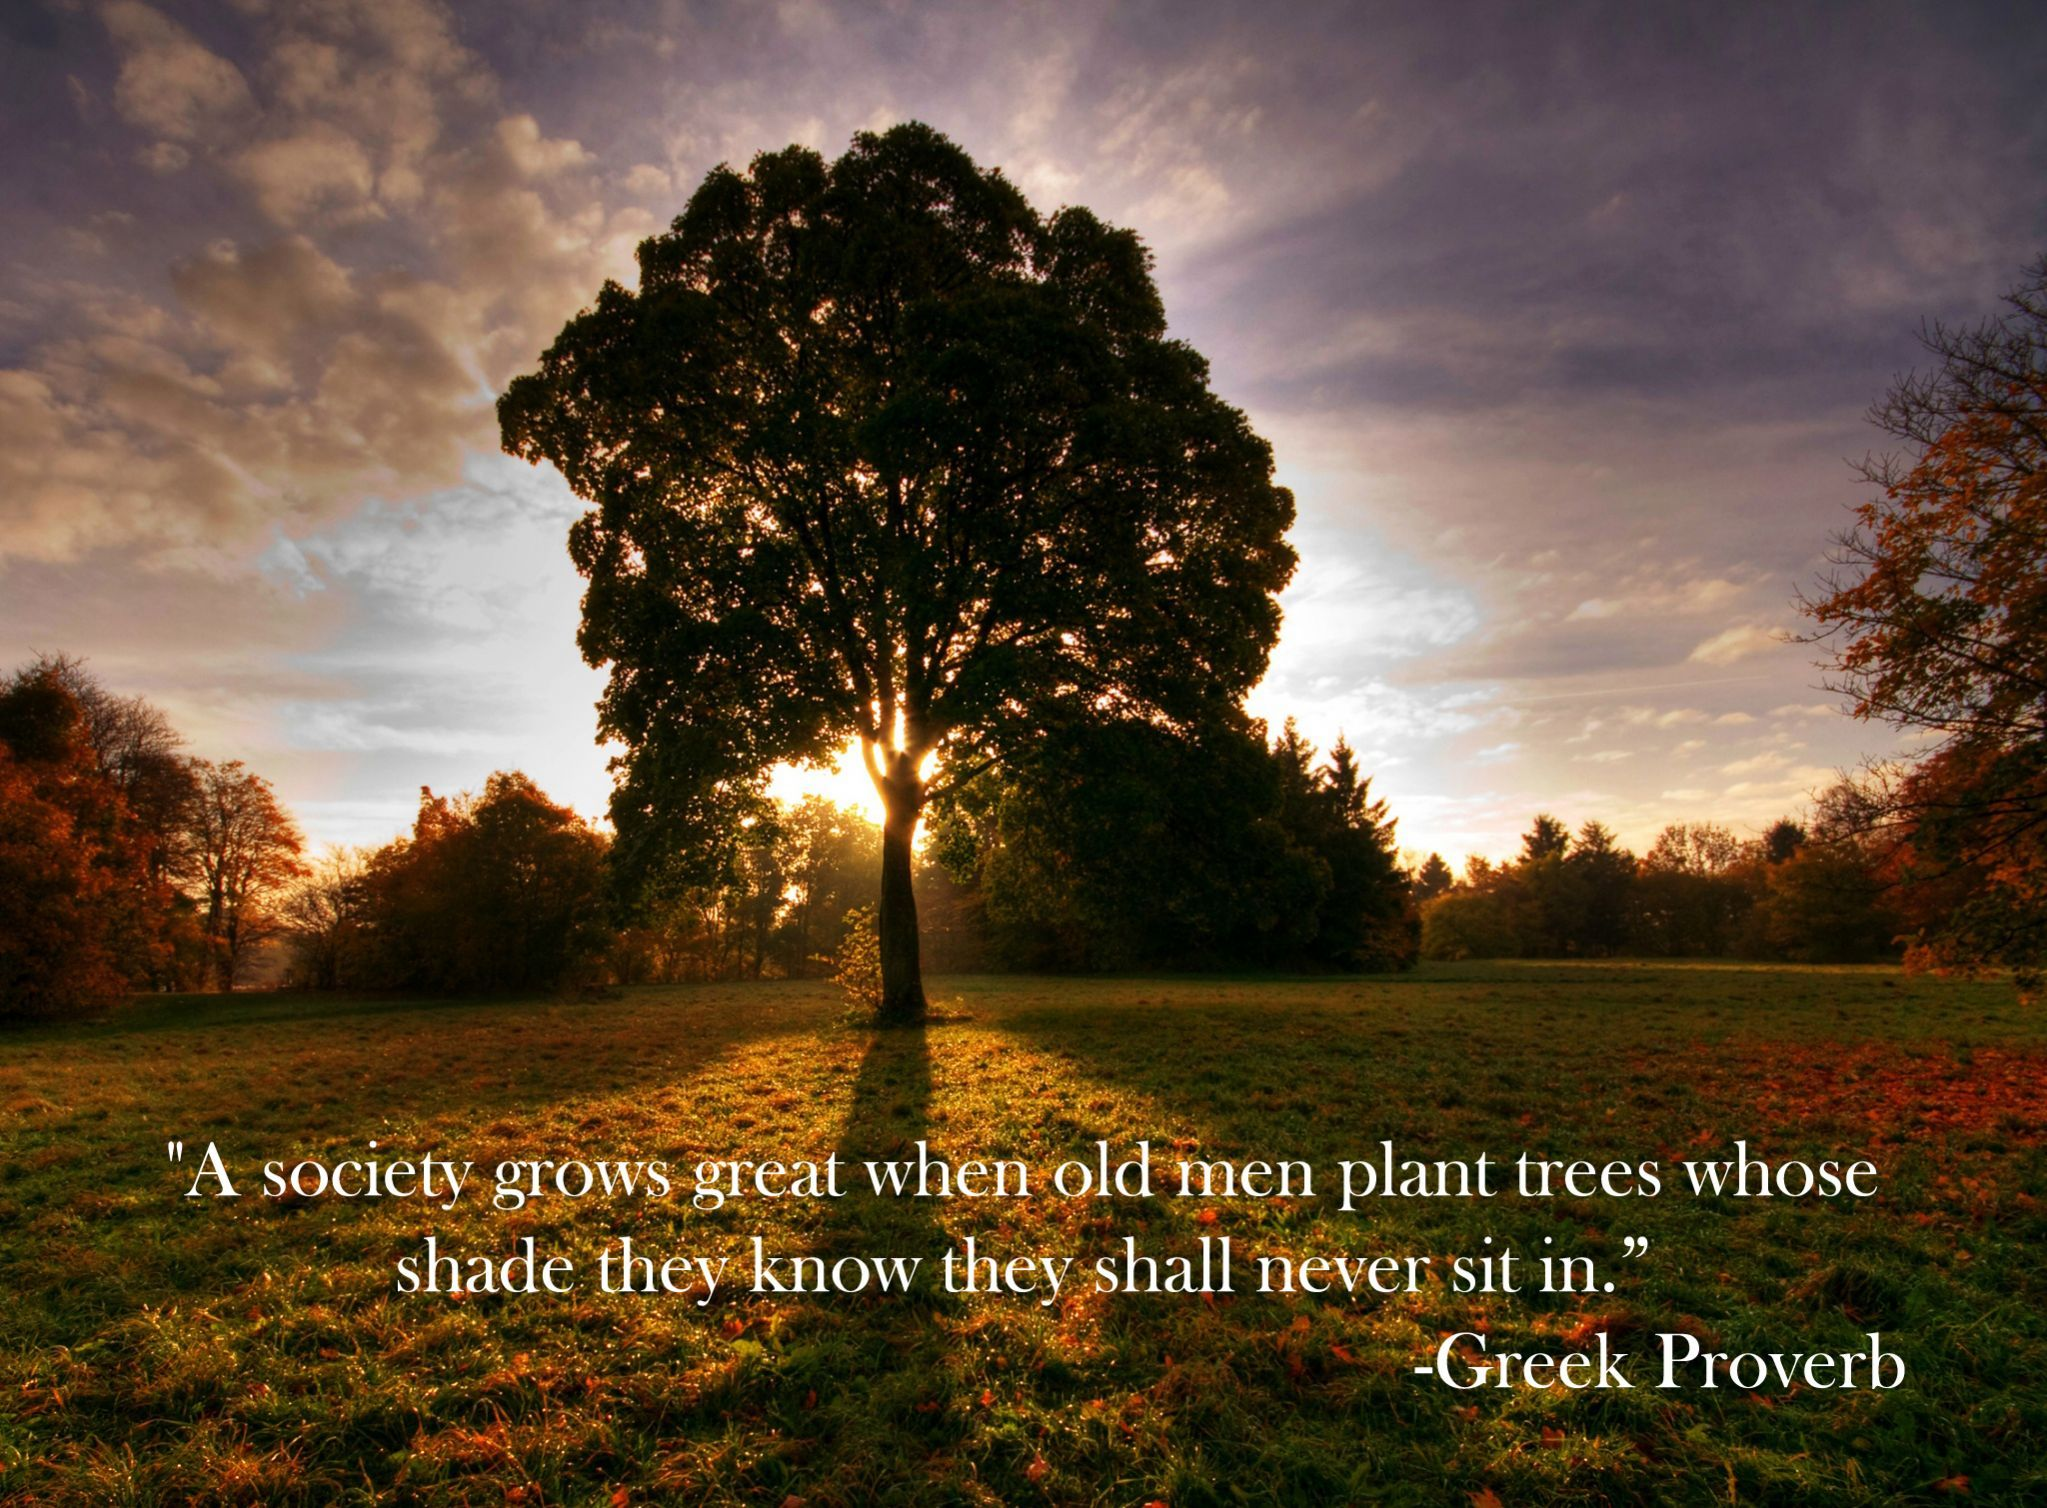 """$ ' ' enplant trees Whose ' néver sit in."""" - https://inspirational.ly"""